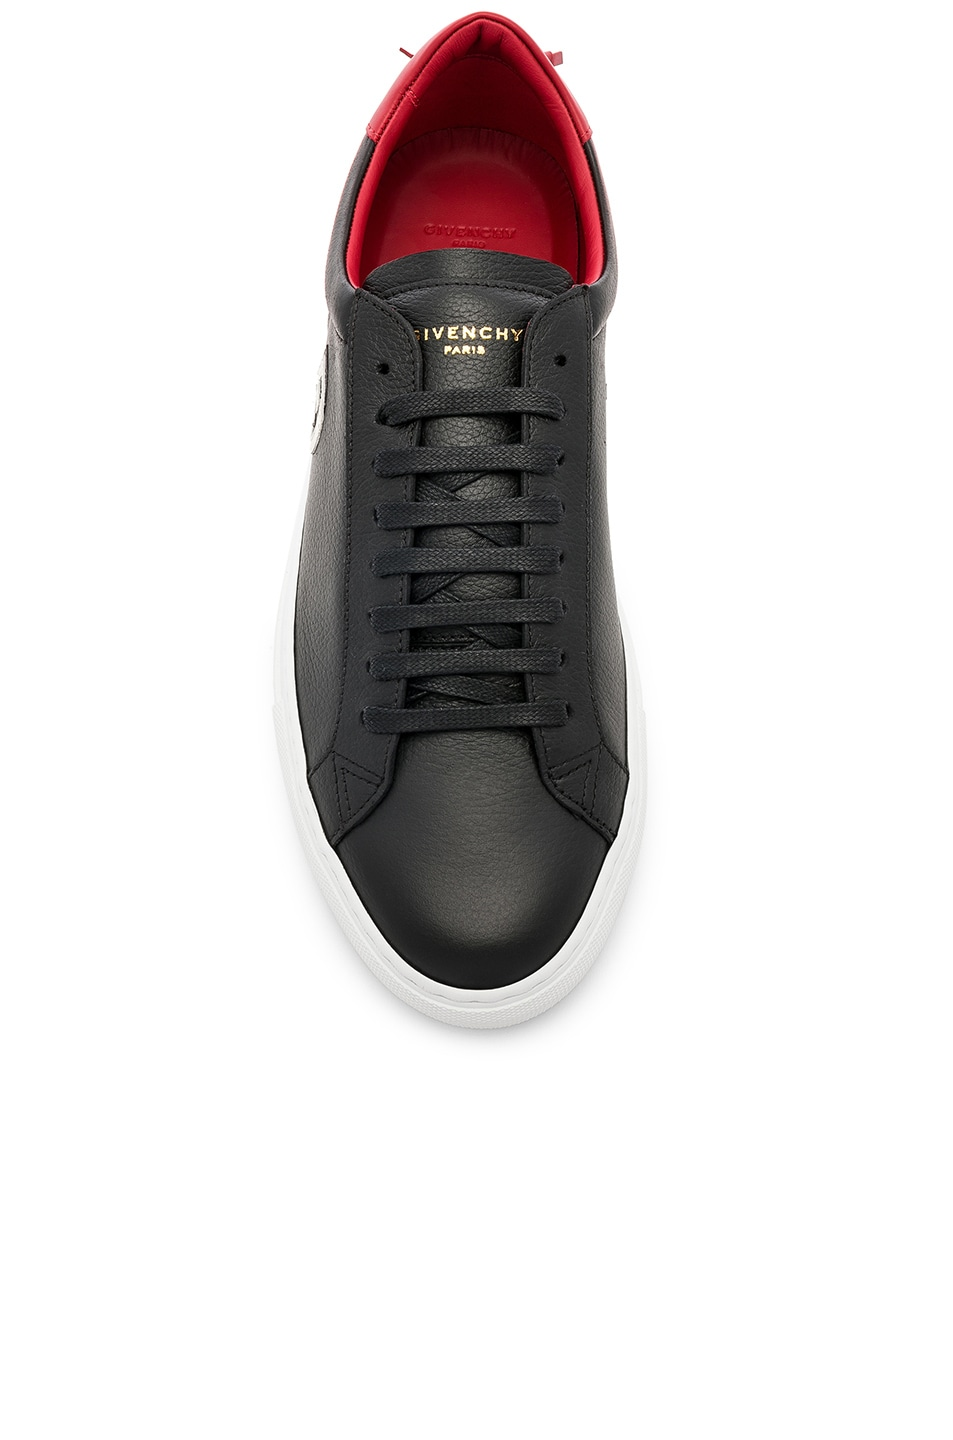 Image 4 of Givenchy Leather Urban Street Low Sneakers in Black & Red